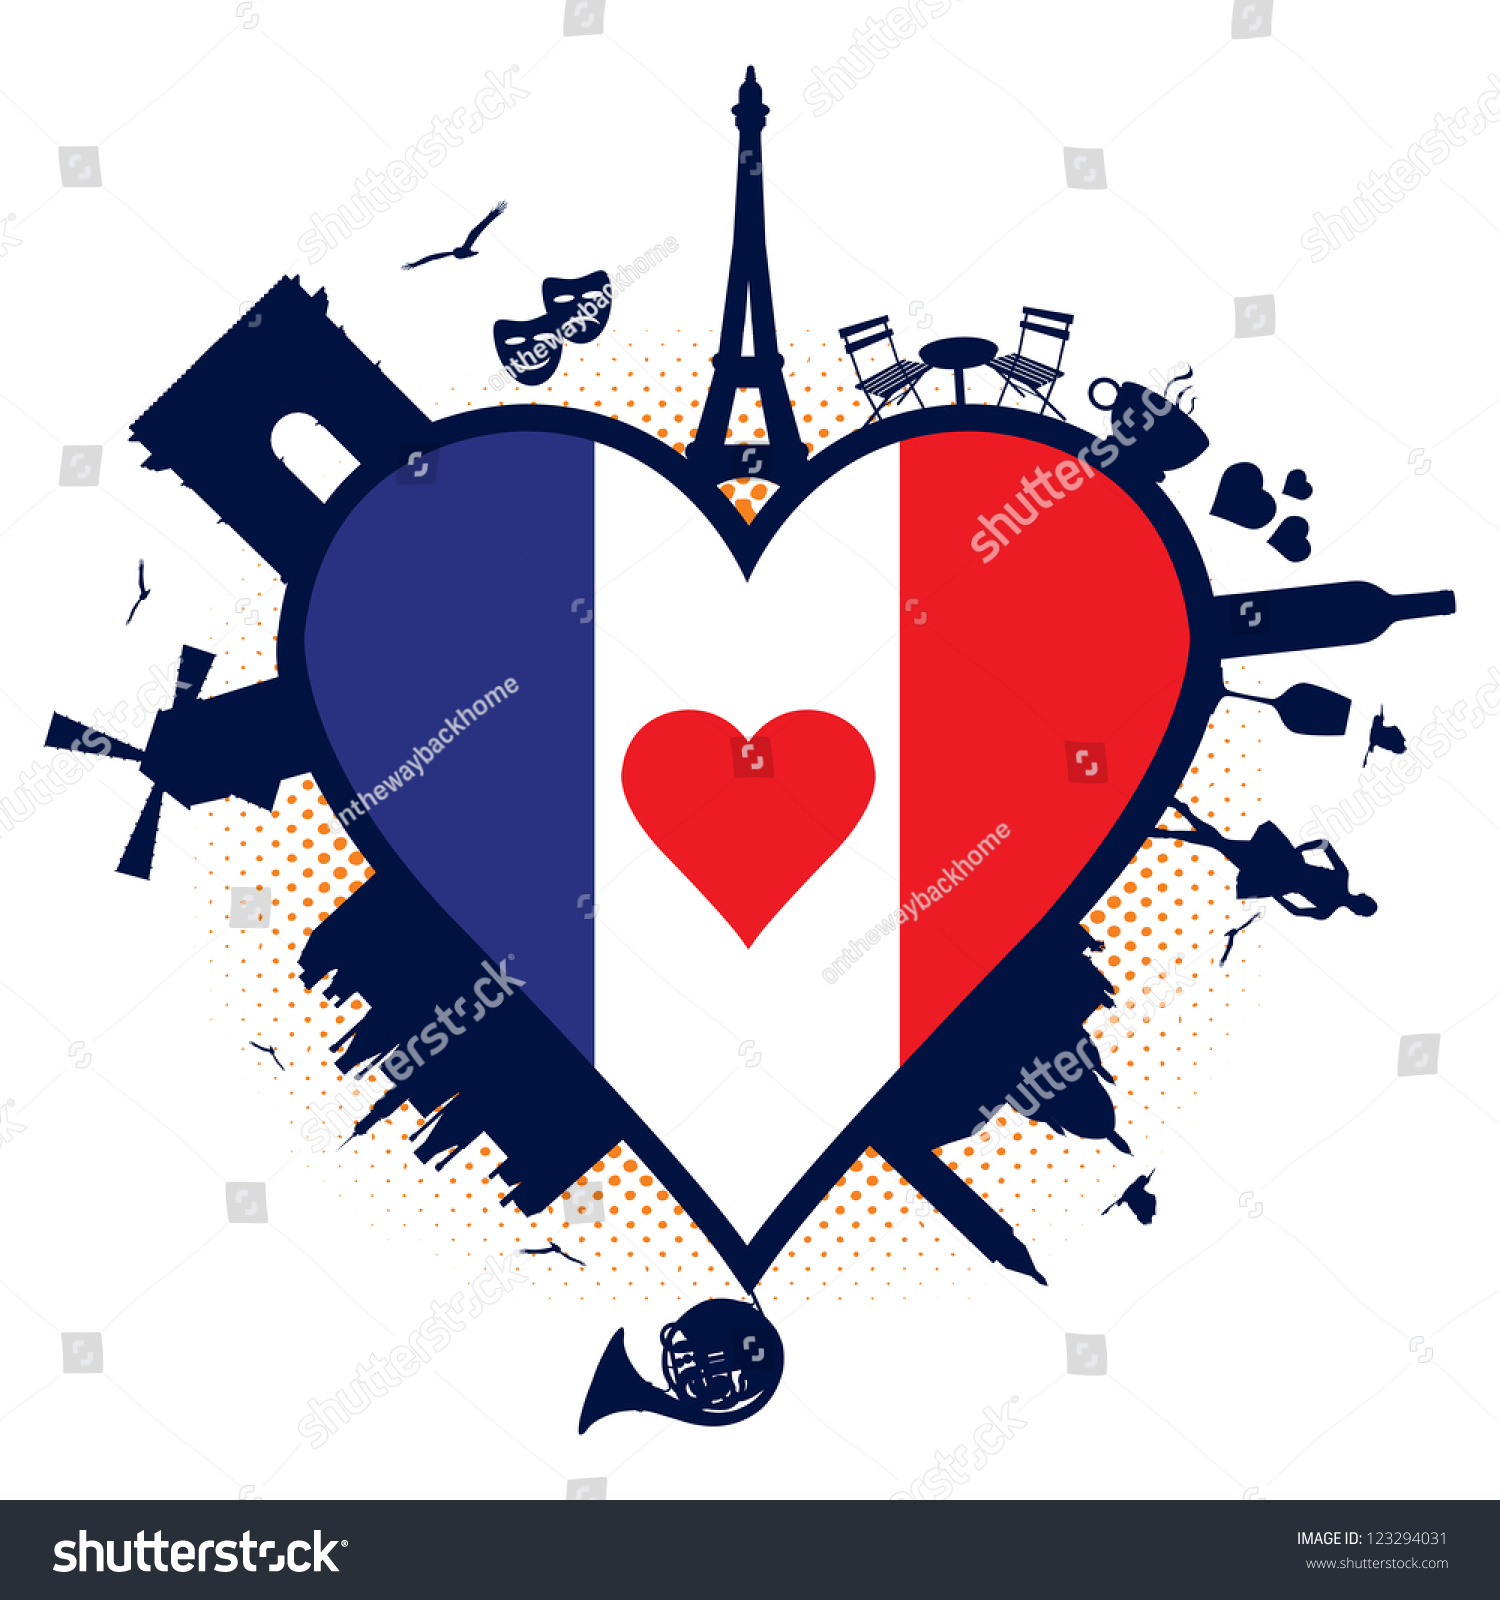 France Heart Shaped Flag Silhouettes Stock Vector (Royalty Free ...